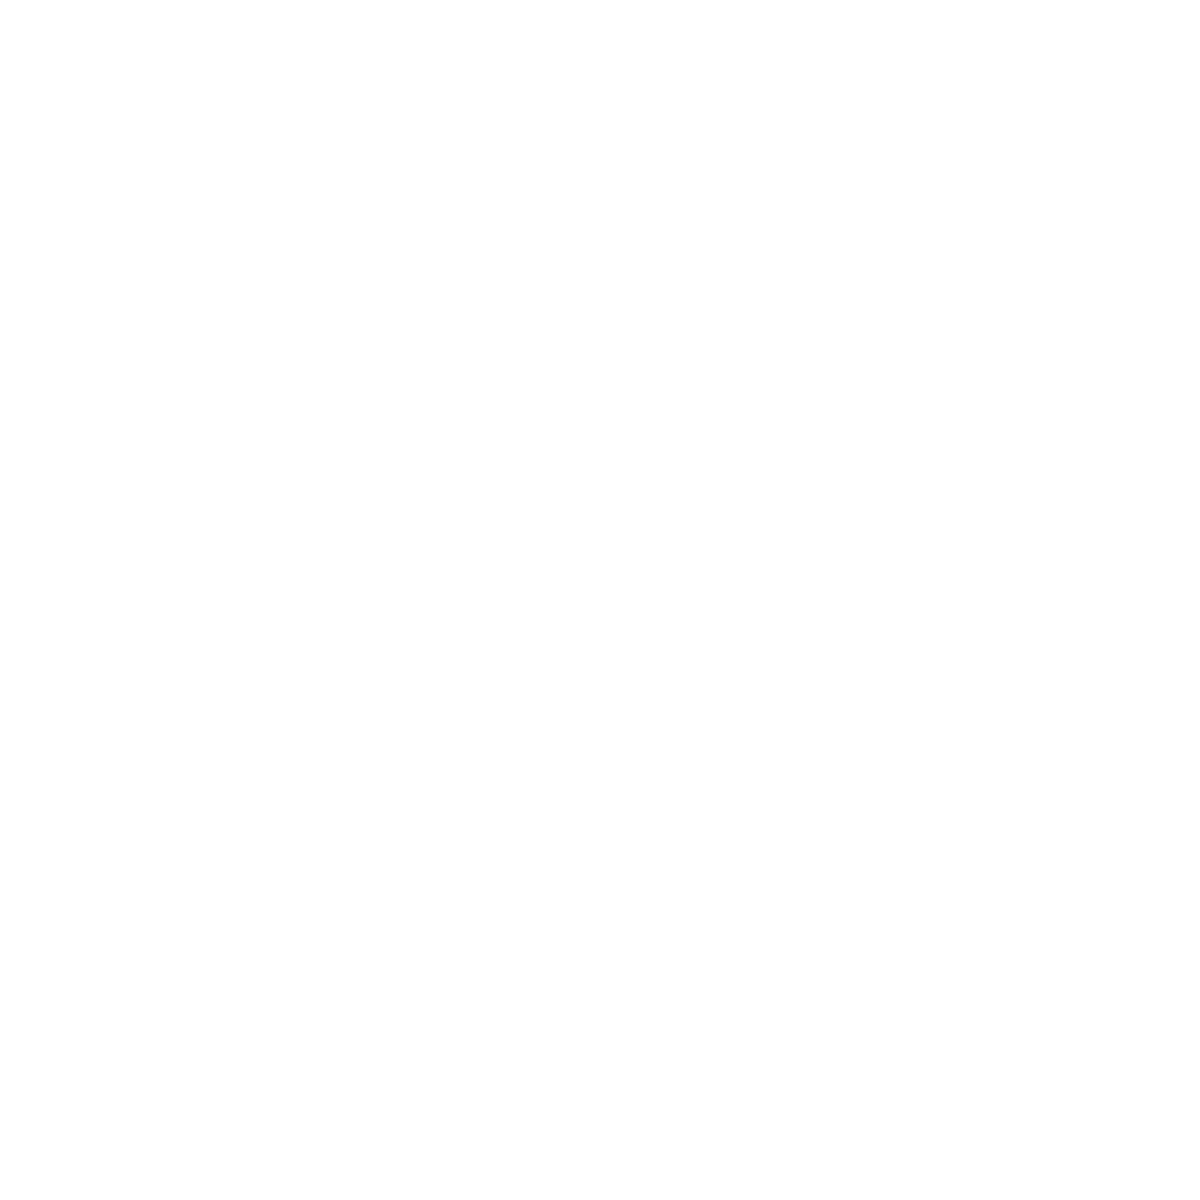 Flagship - The Emporium Of Postmodern Activities - Los Angeles